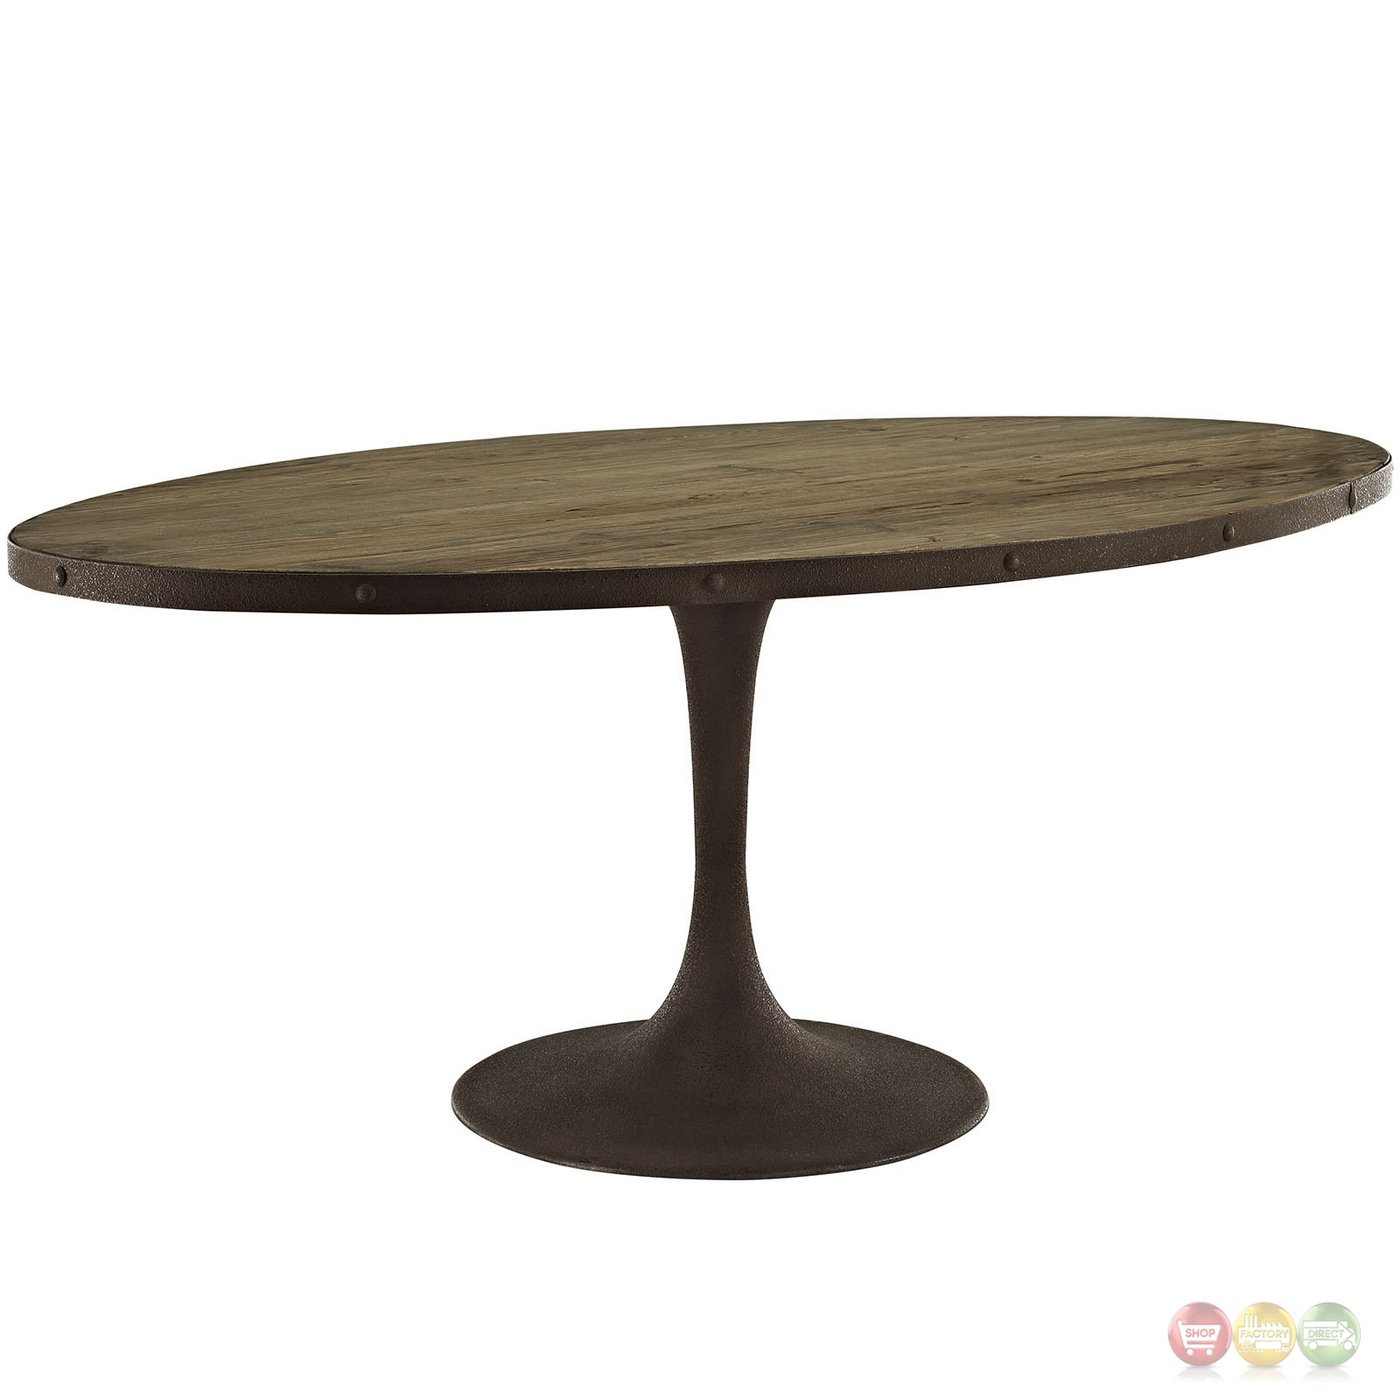 Drive Rustic 78 Quot Oval Wood Top Dining Table W Iron